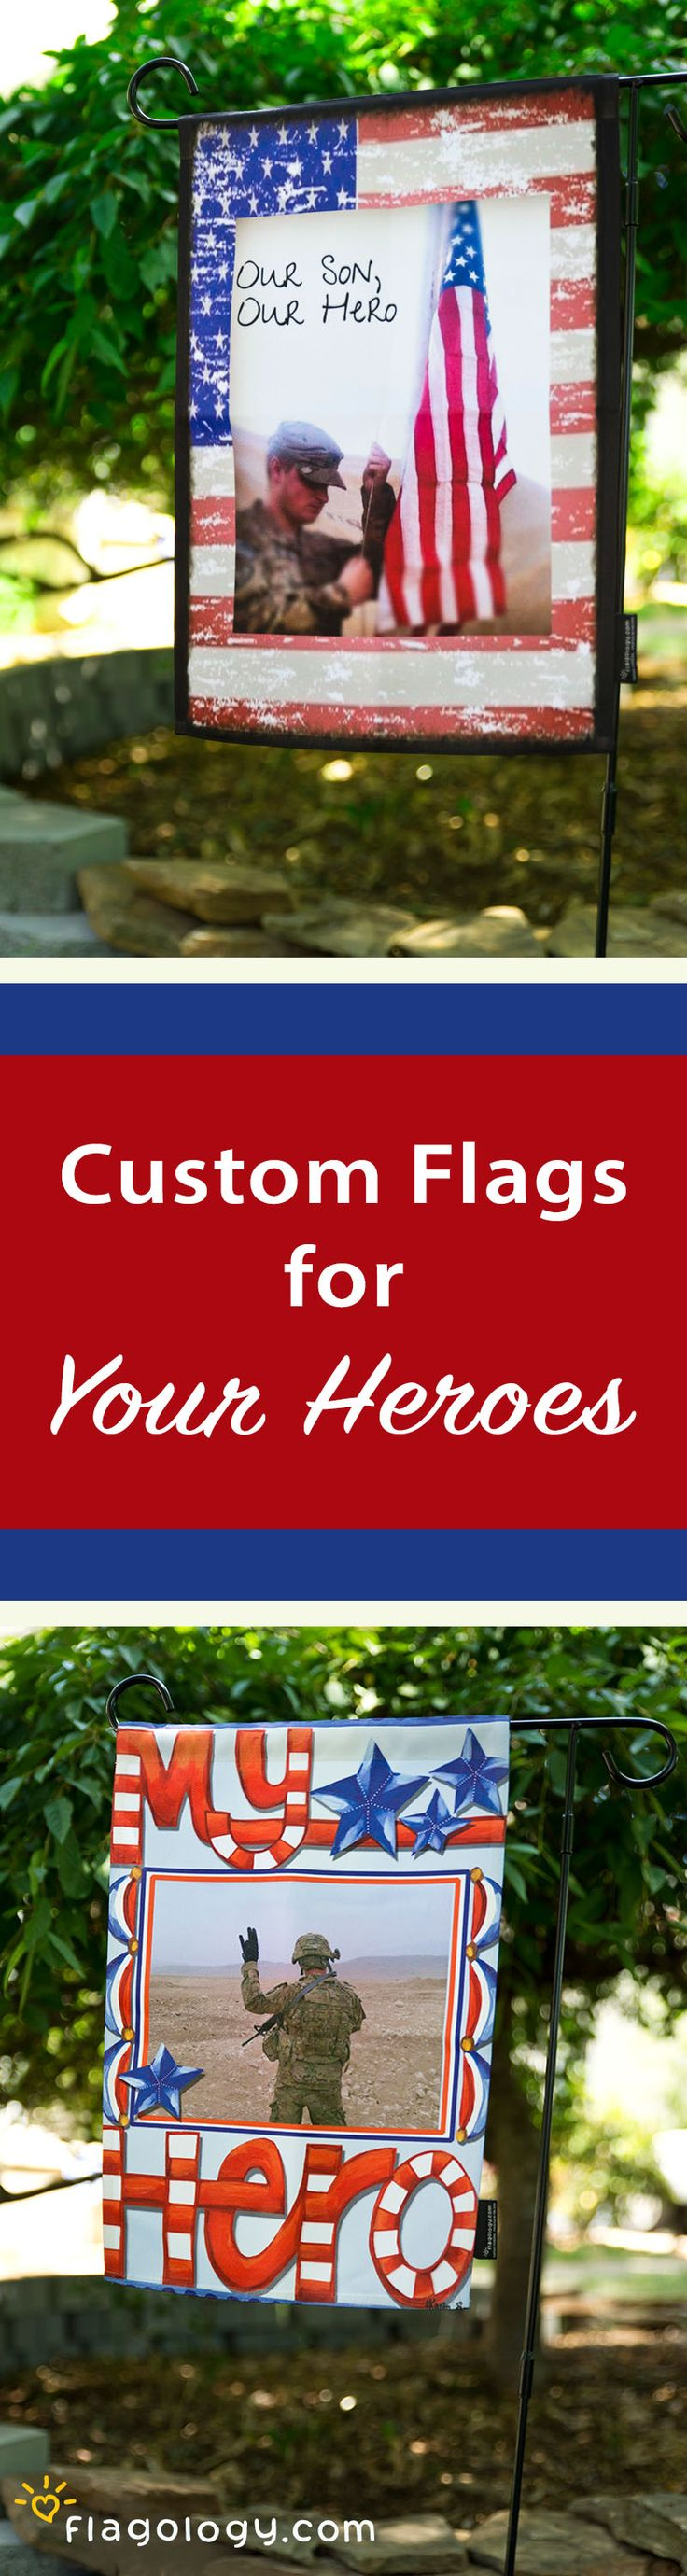 Your hero is protecting our freedom: celebrate them by flying your pride! Create a custom flag for a military homecoming, to support your serviceman, and show your patriotic spirit. Personalize a flag design with your photo in minutes online. High quality, double sided flags starting at $27.99